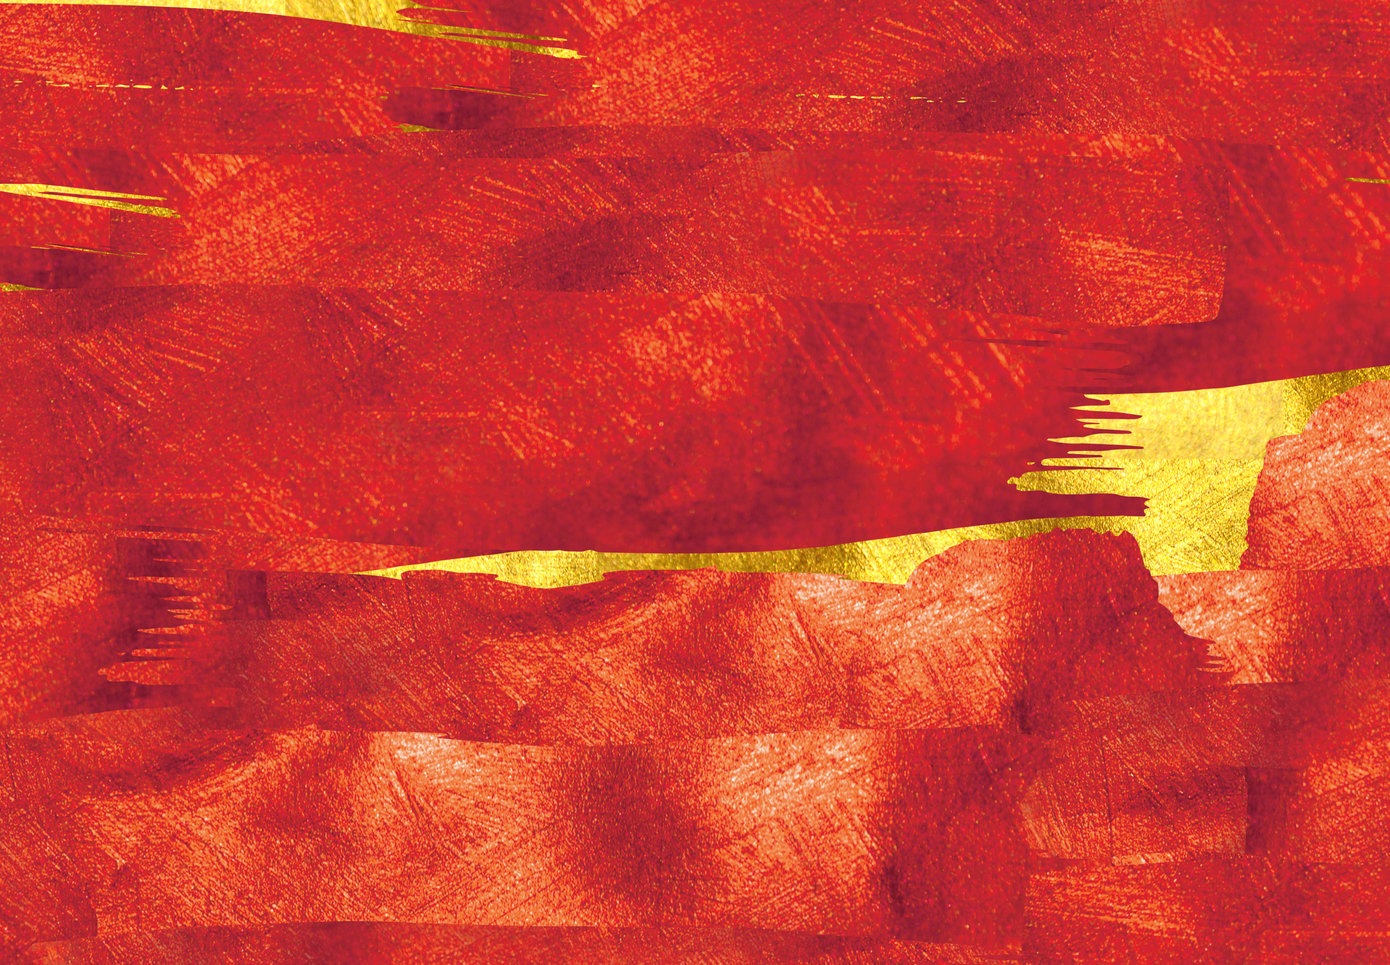 Red foil texture overlaying a gold texture